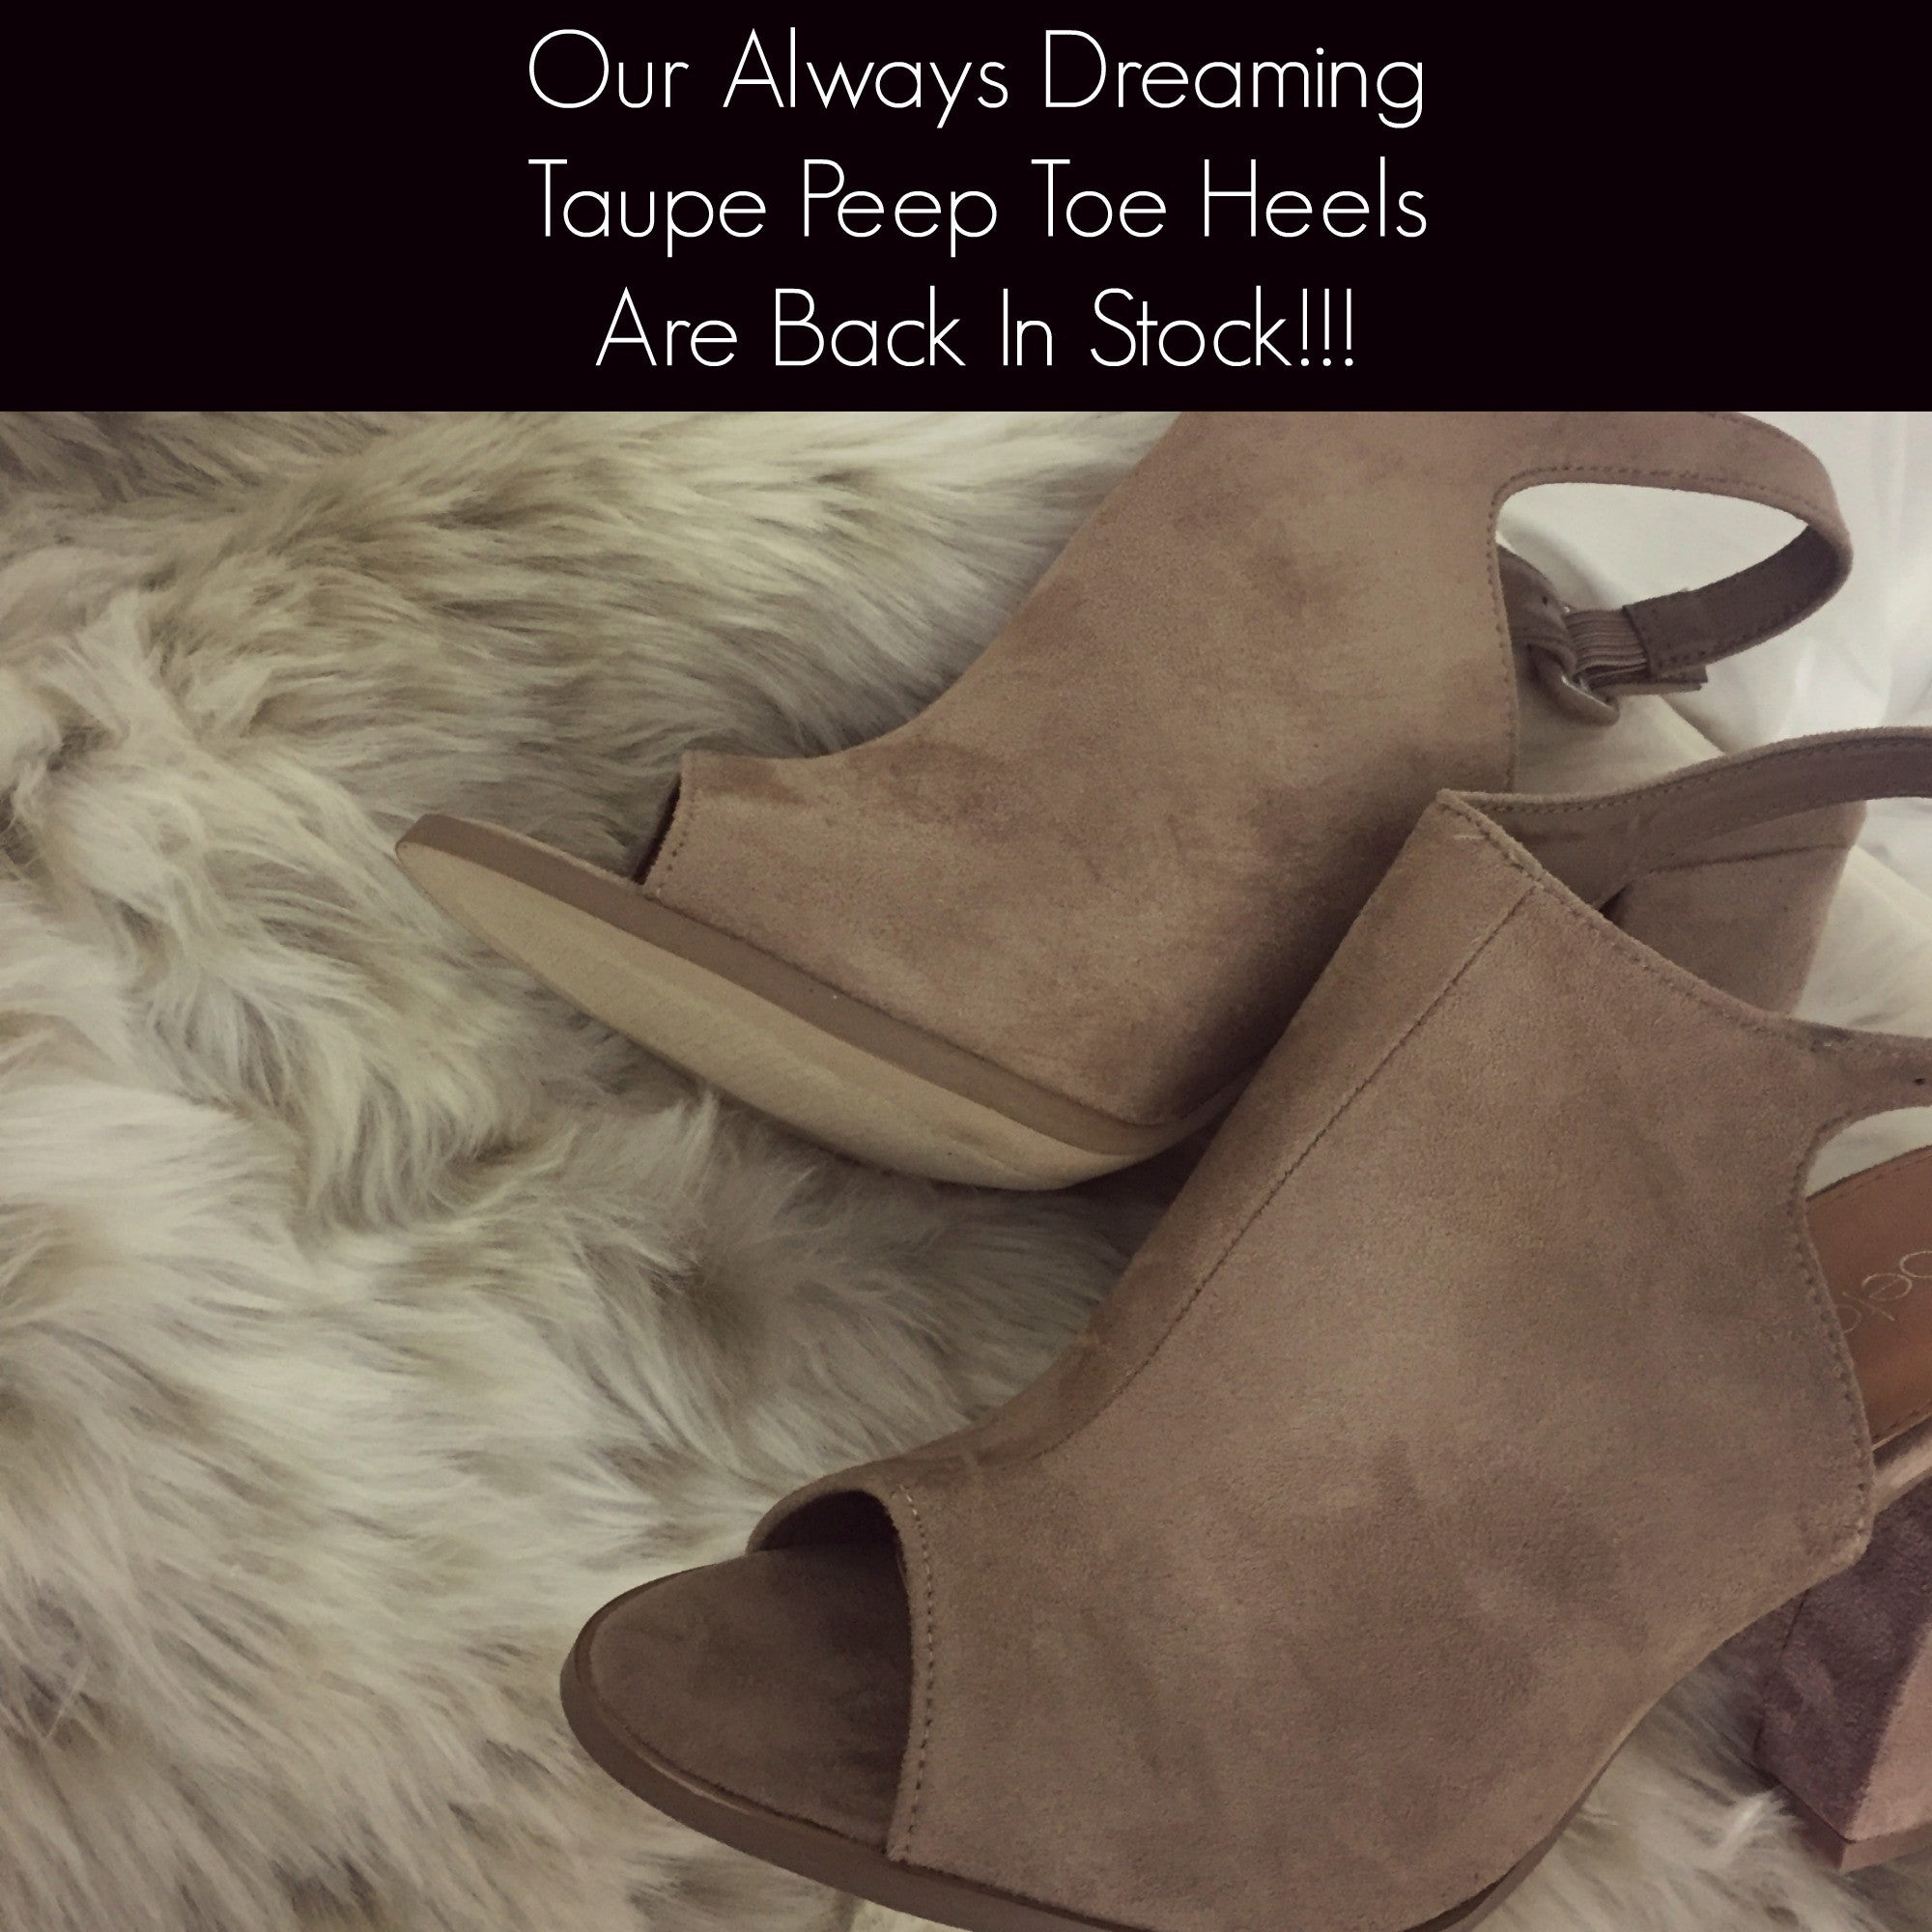 6d4464361d Our Always Dreaming Taupe Peep Toe Heels Are Back In Stock ...